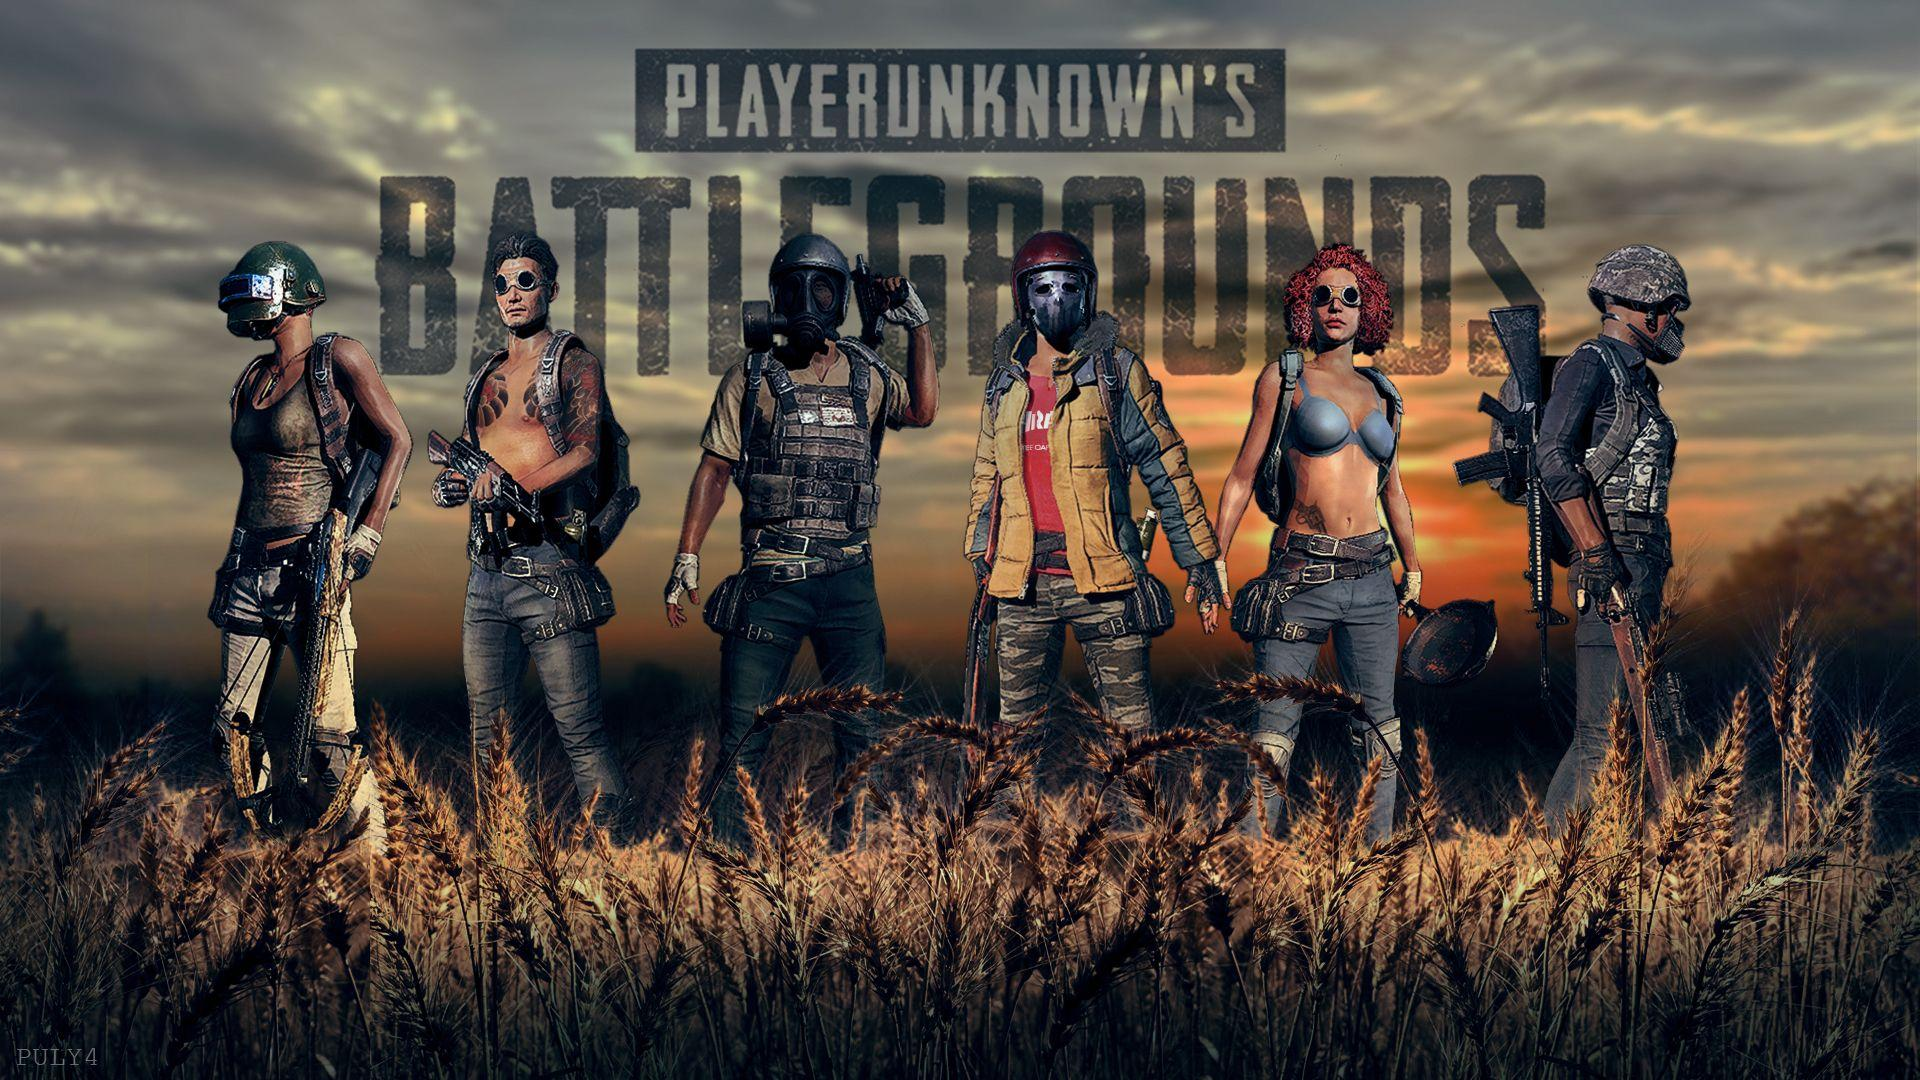 Pubg Wallpapers Wallpaper Cave